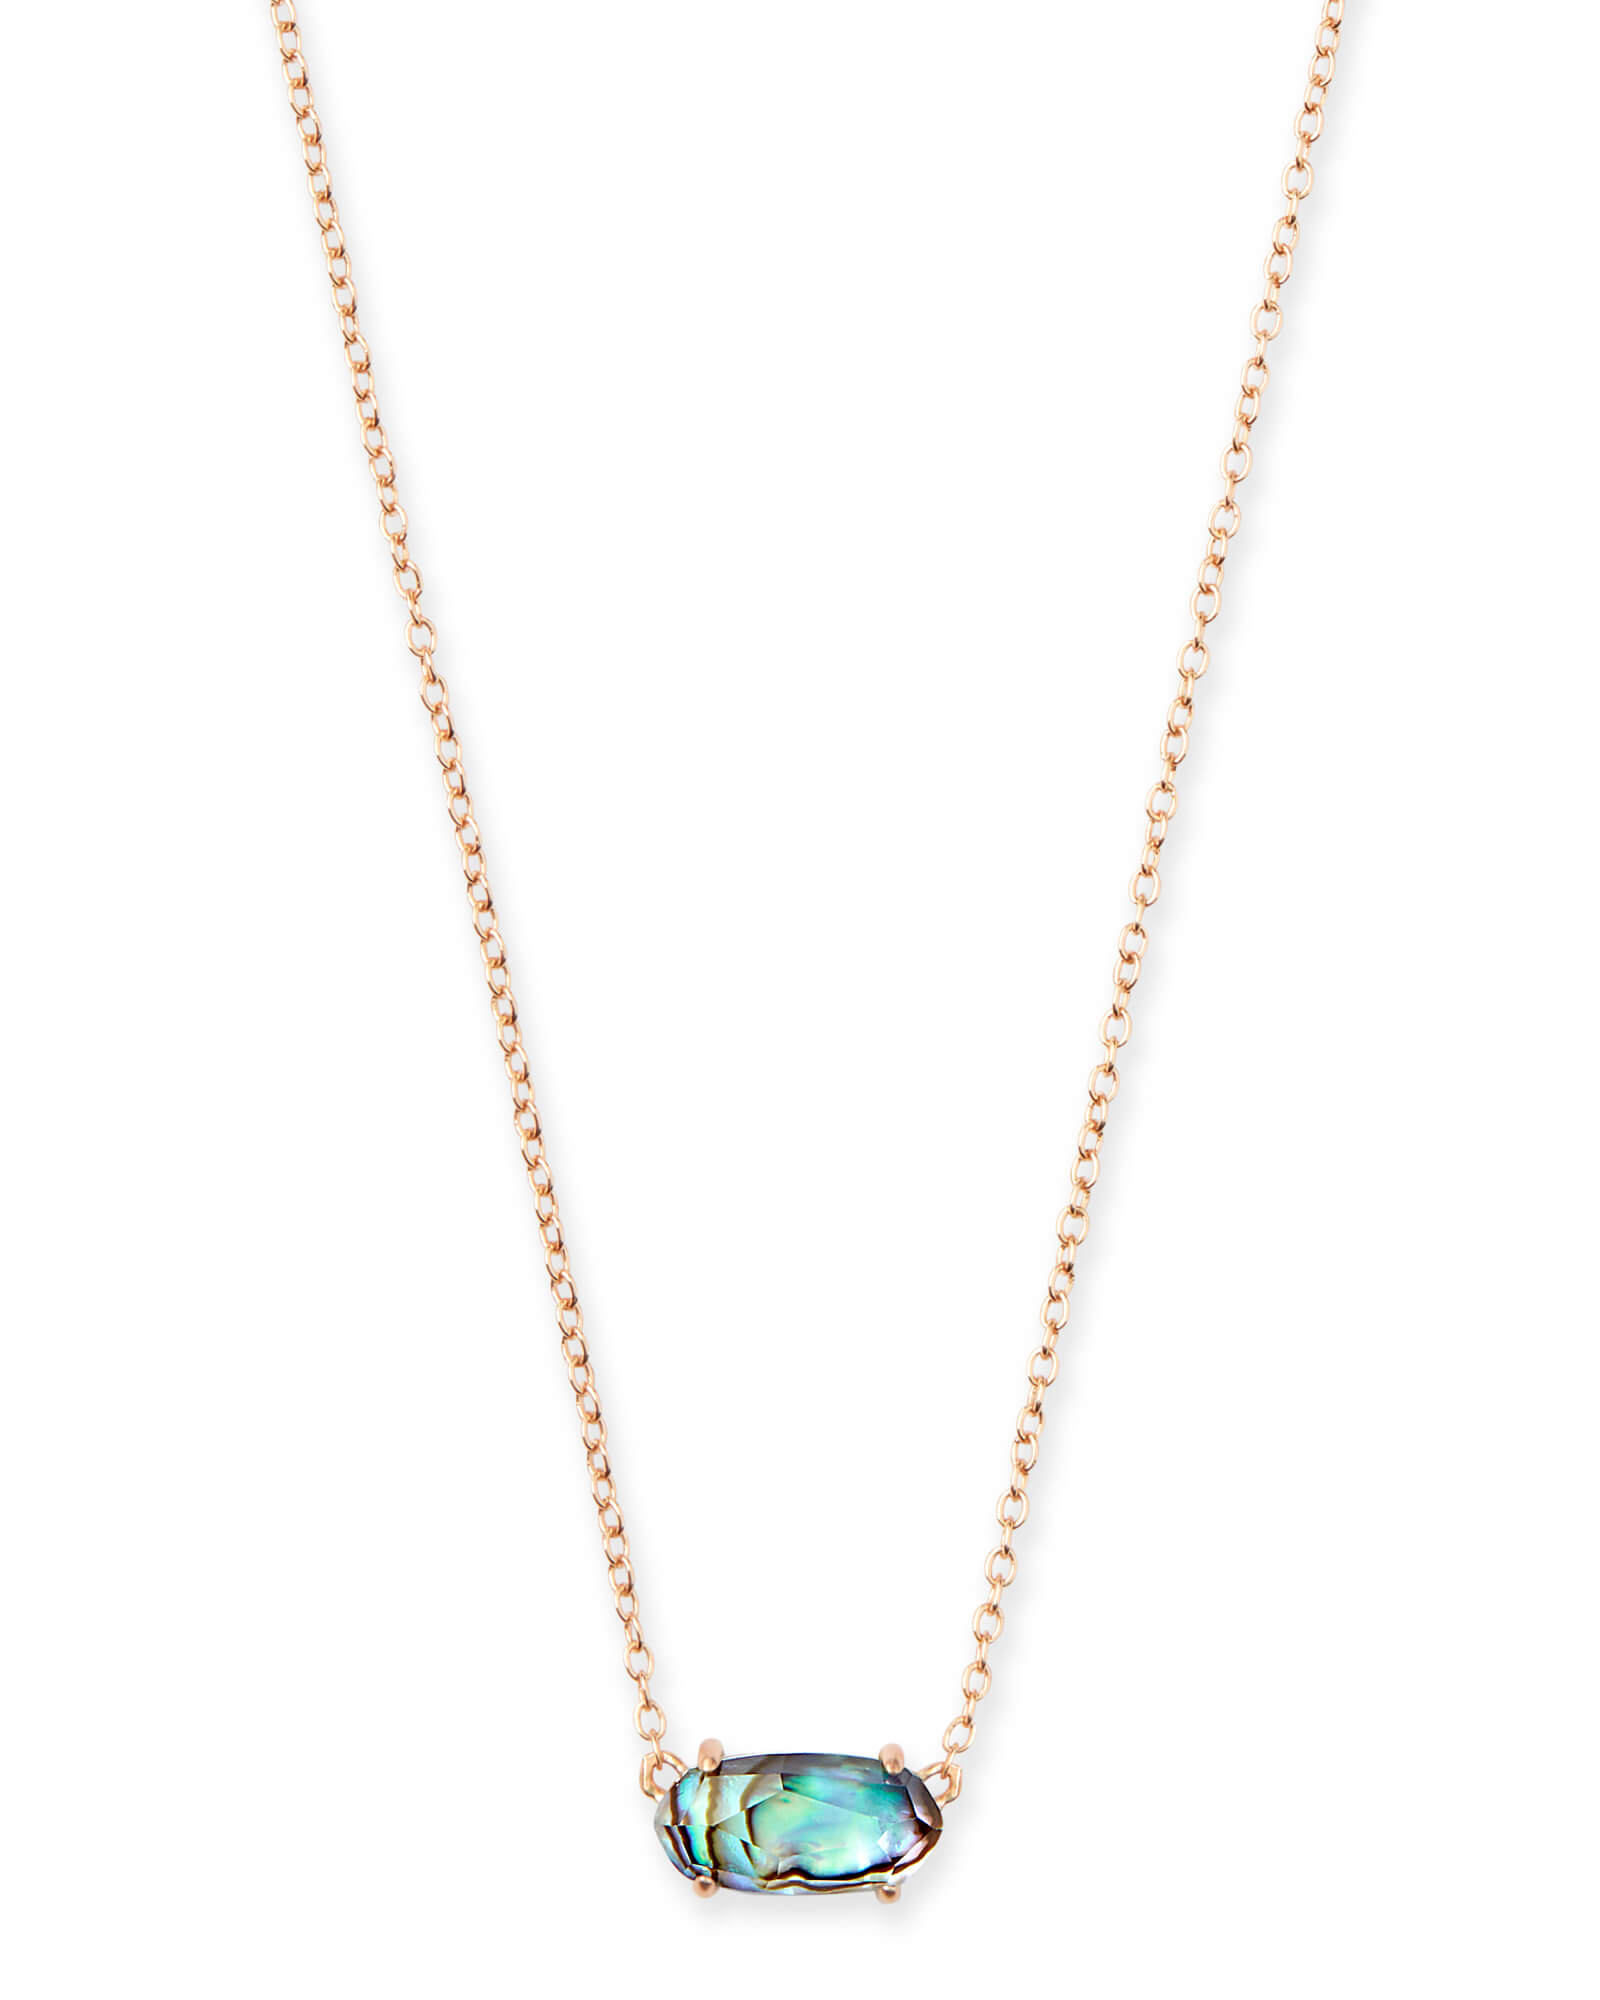 Ever Rose Gold Pendant Necklace in Abalone Shell | Kendra Scott